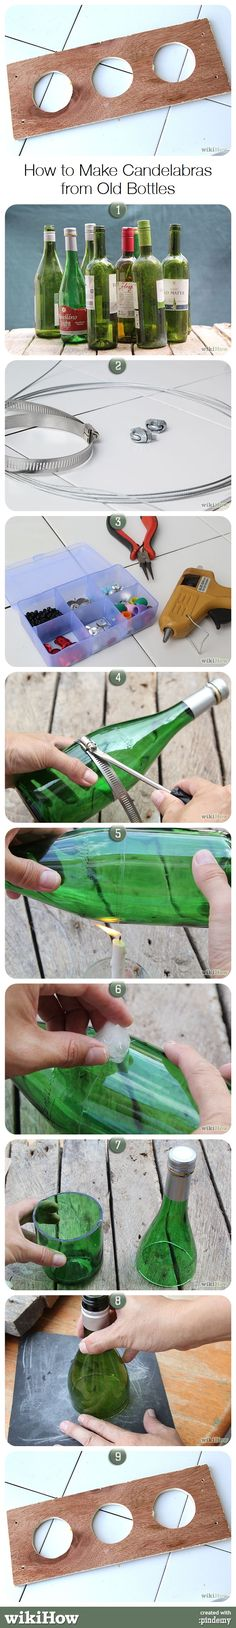 How to Make Candelabras from Old Bottles, from wikiHow.com